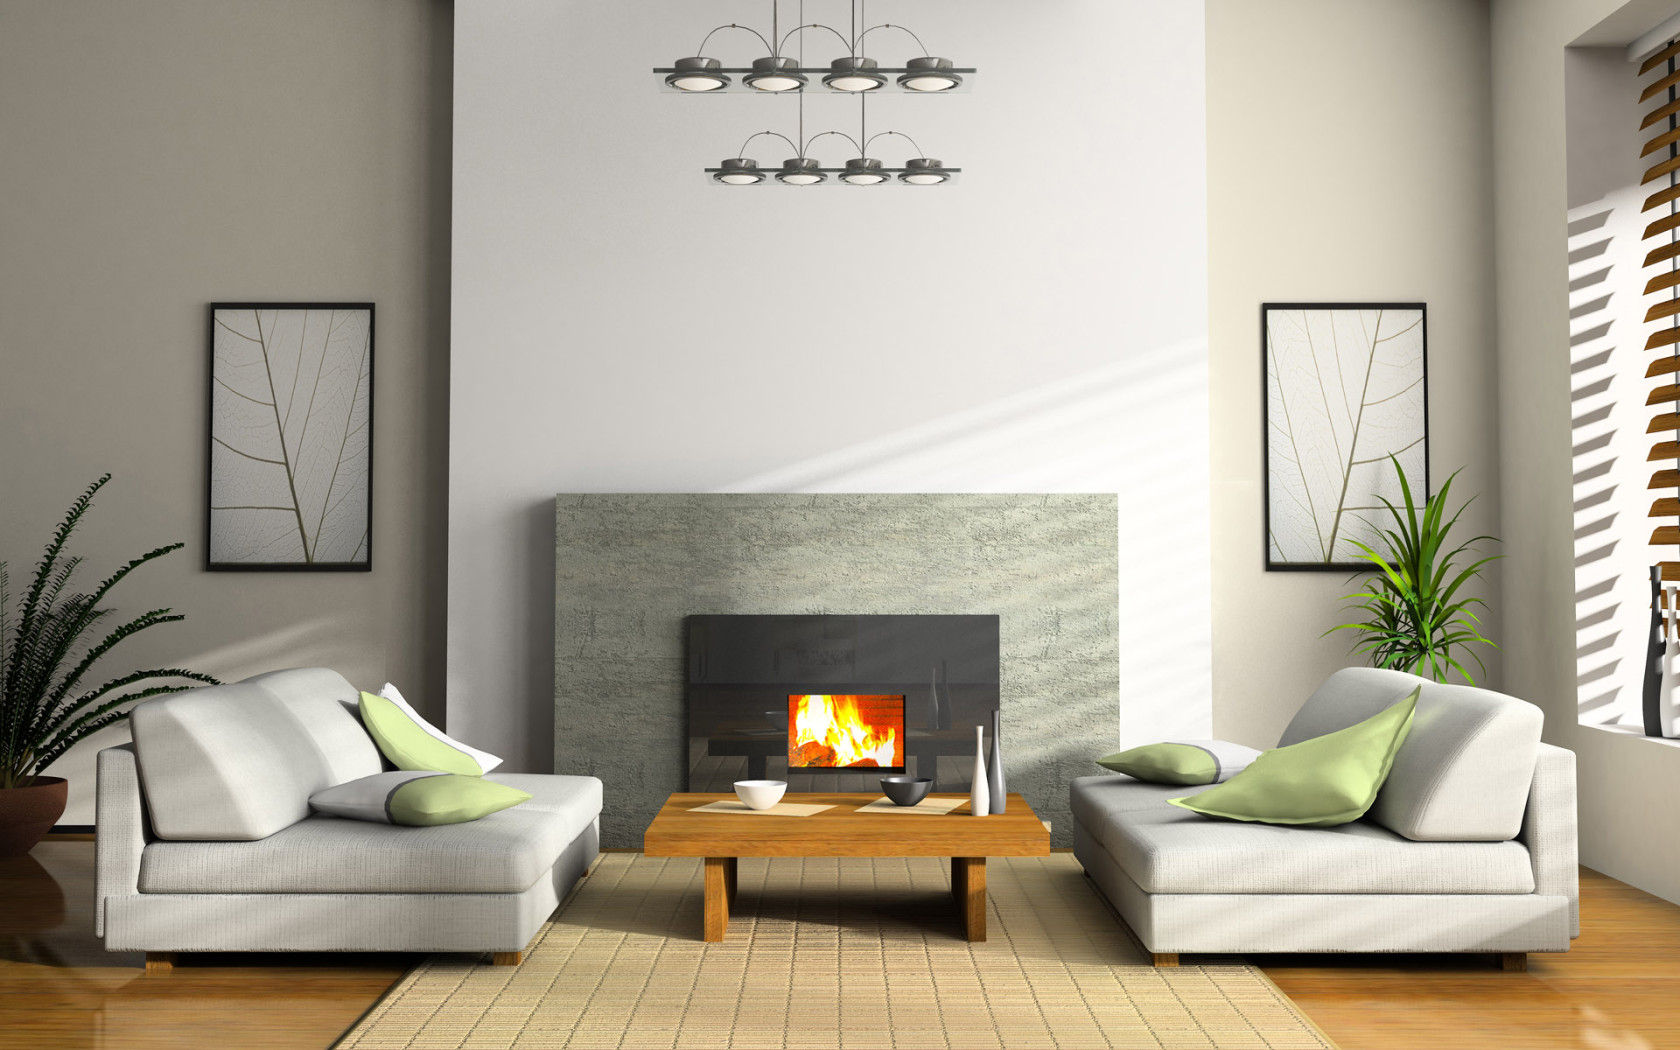 Living Room Fireplace Living Room lovable fireplace living room designs design ideas rooms with fireplaces